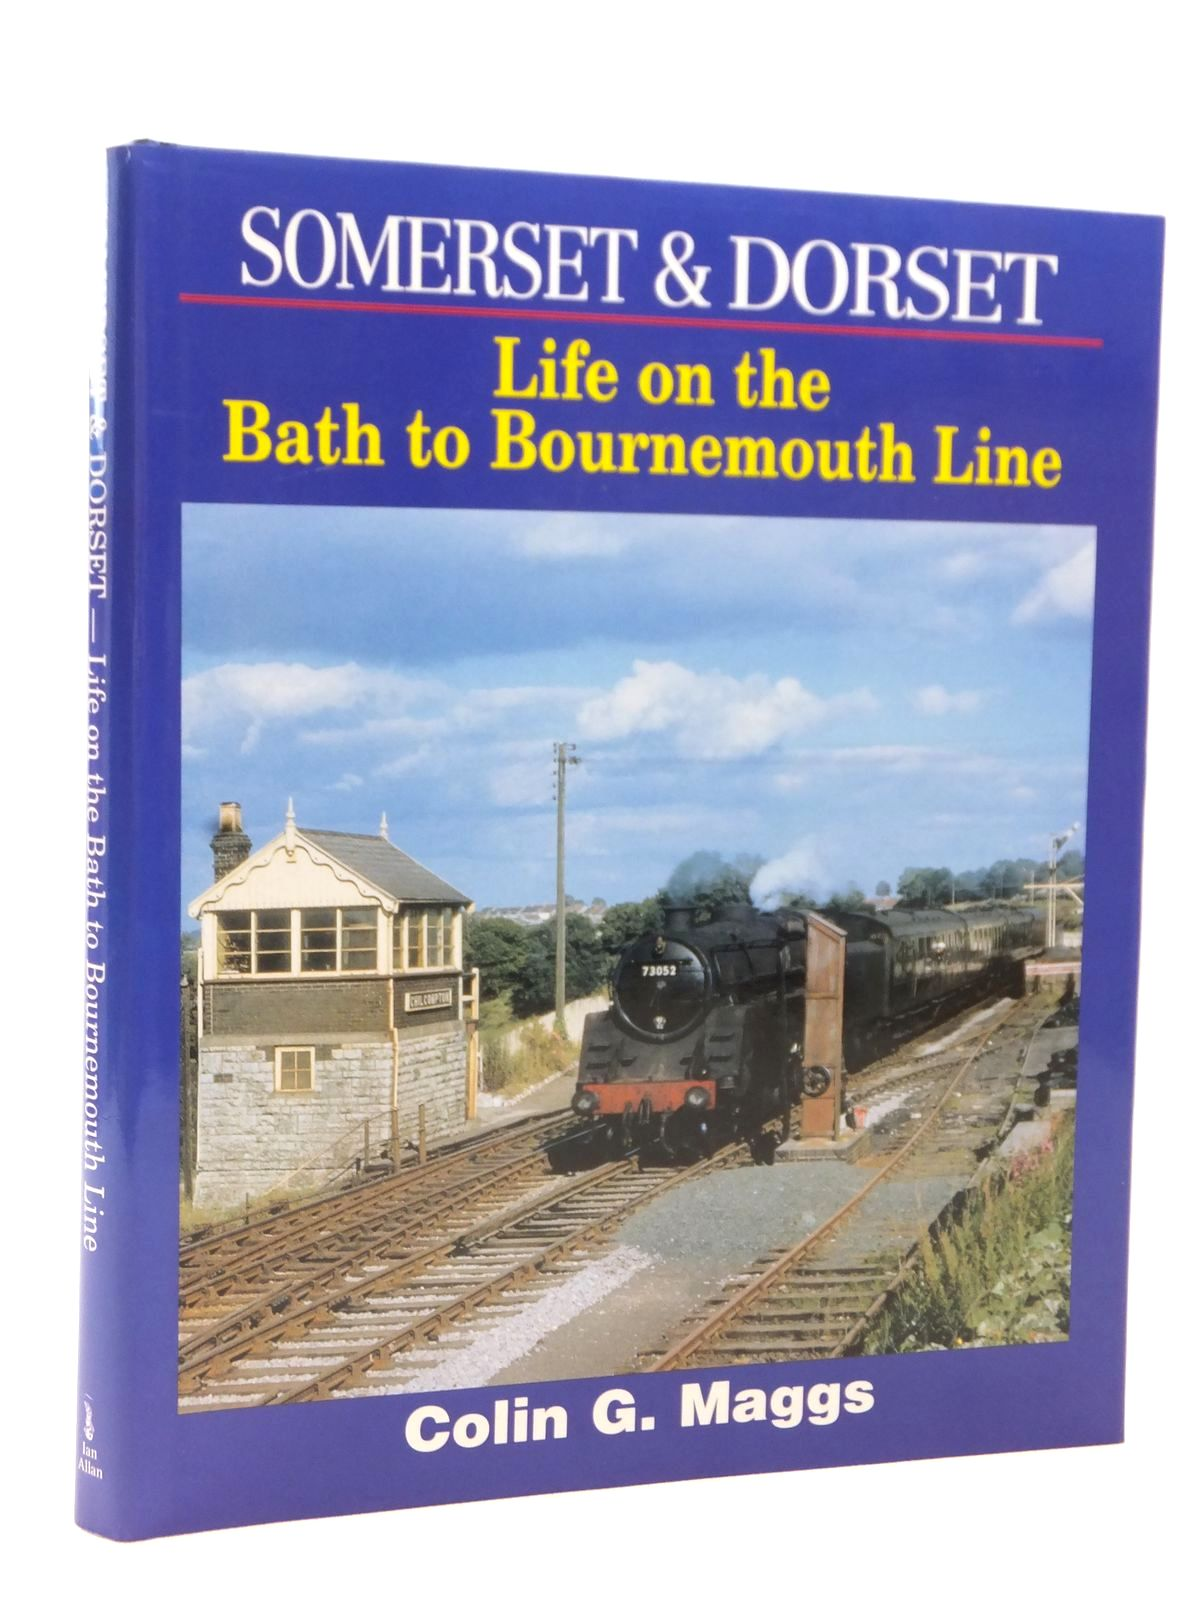 Photo of SOMERSET & DORSET LIFE ON THE BATH TO BOURNEMOUTH LINE written by Maggs, Colin G. published by Ian Allan (STOCK CODE: 1609086)  for sale by Stella & Rose's Books